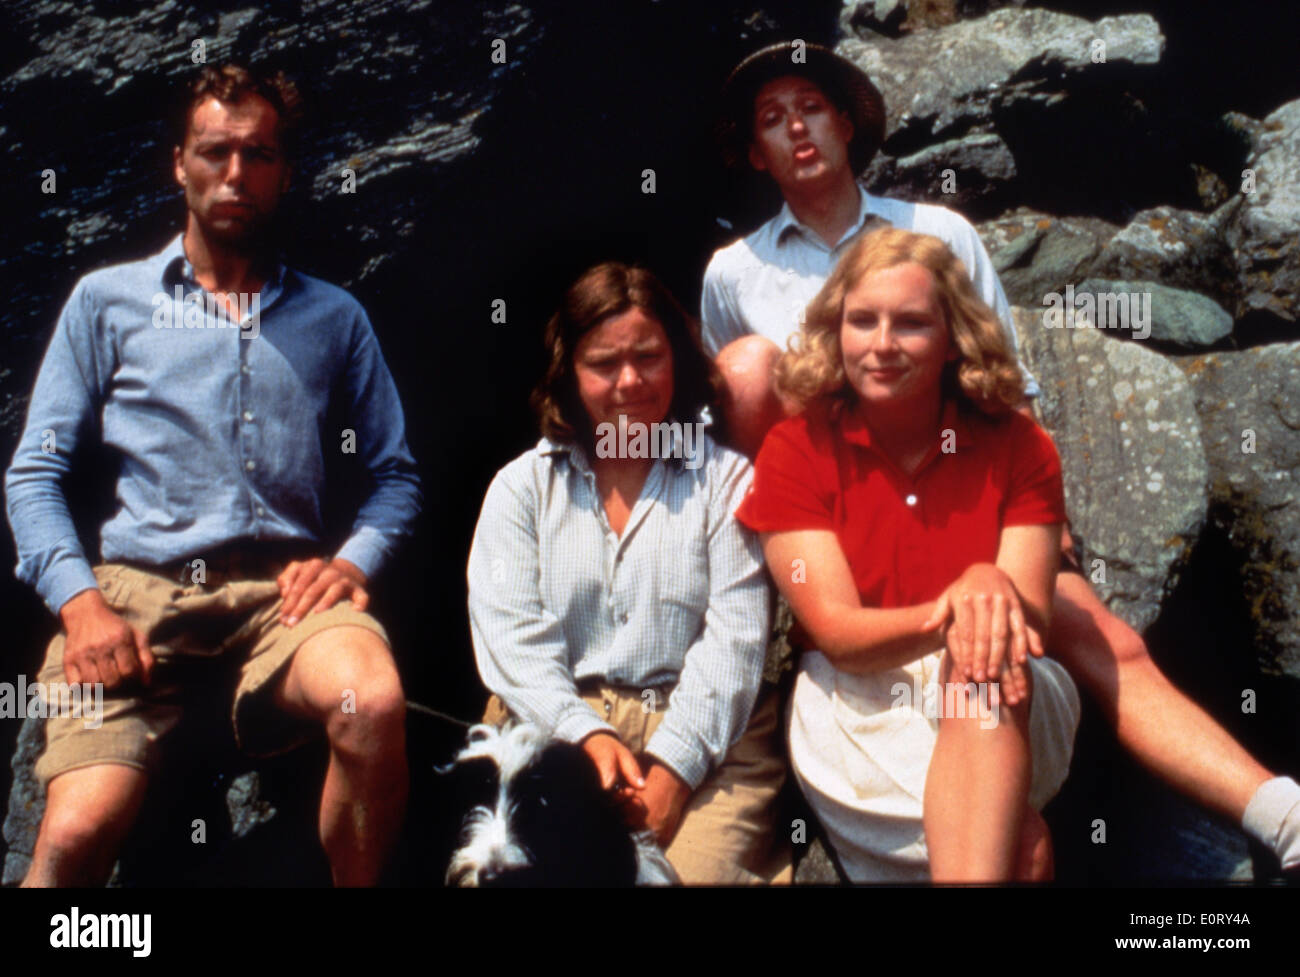 THE COMIC STRIP PRESENTS... 5 GO MAD IN DORSET (TV) PETER RICHARDSON DAWN FRIENCH ADRIAN EDMONDSON JENNIFER SAUNDERS KEITH - Stock Image